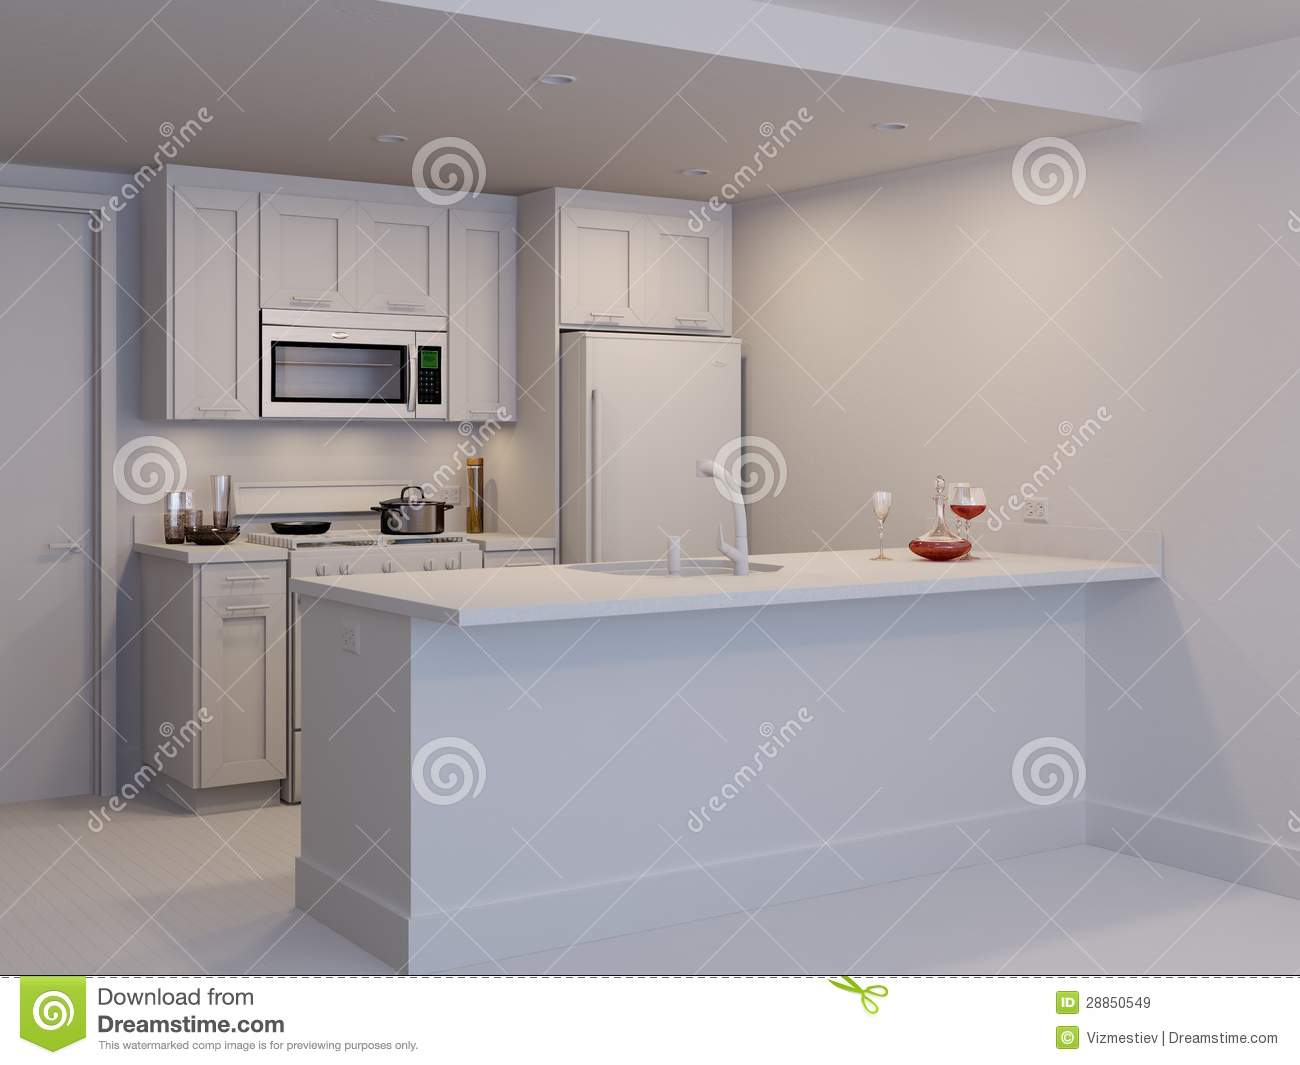 home interior design vector with Royalty Free Stock Images Mini Kitchen White Model Image28850549 on Royalty Free Stock Photos Drawing Room Image13511178 additionally Creative Wallpapers additionally Vector Window Pink Shutters Transparent Curtains 627444149 moreover 3710 0 furthermore Stock Images Kitchen Stone Fireplace Image13028824.